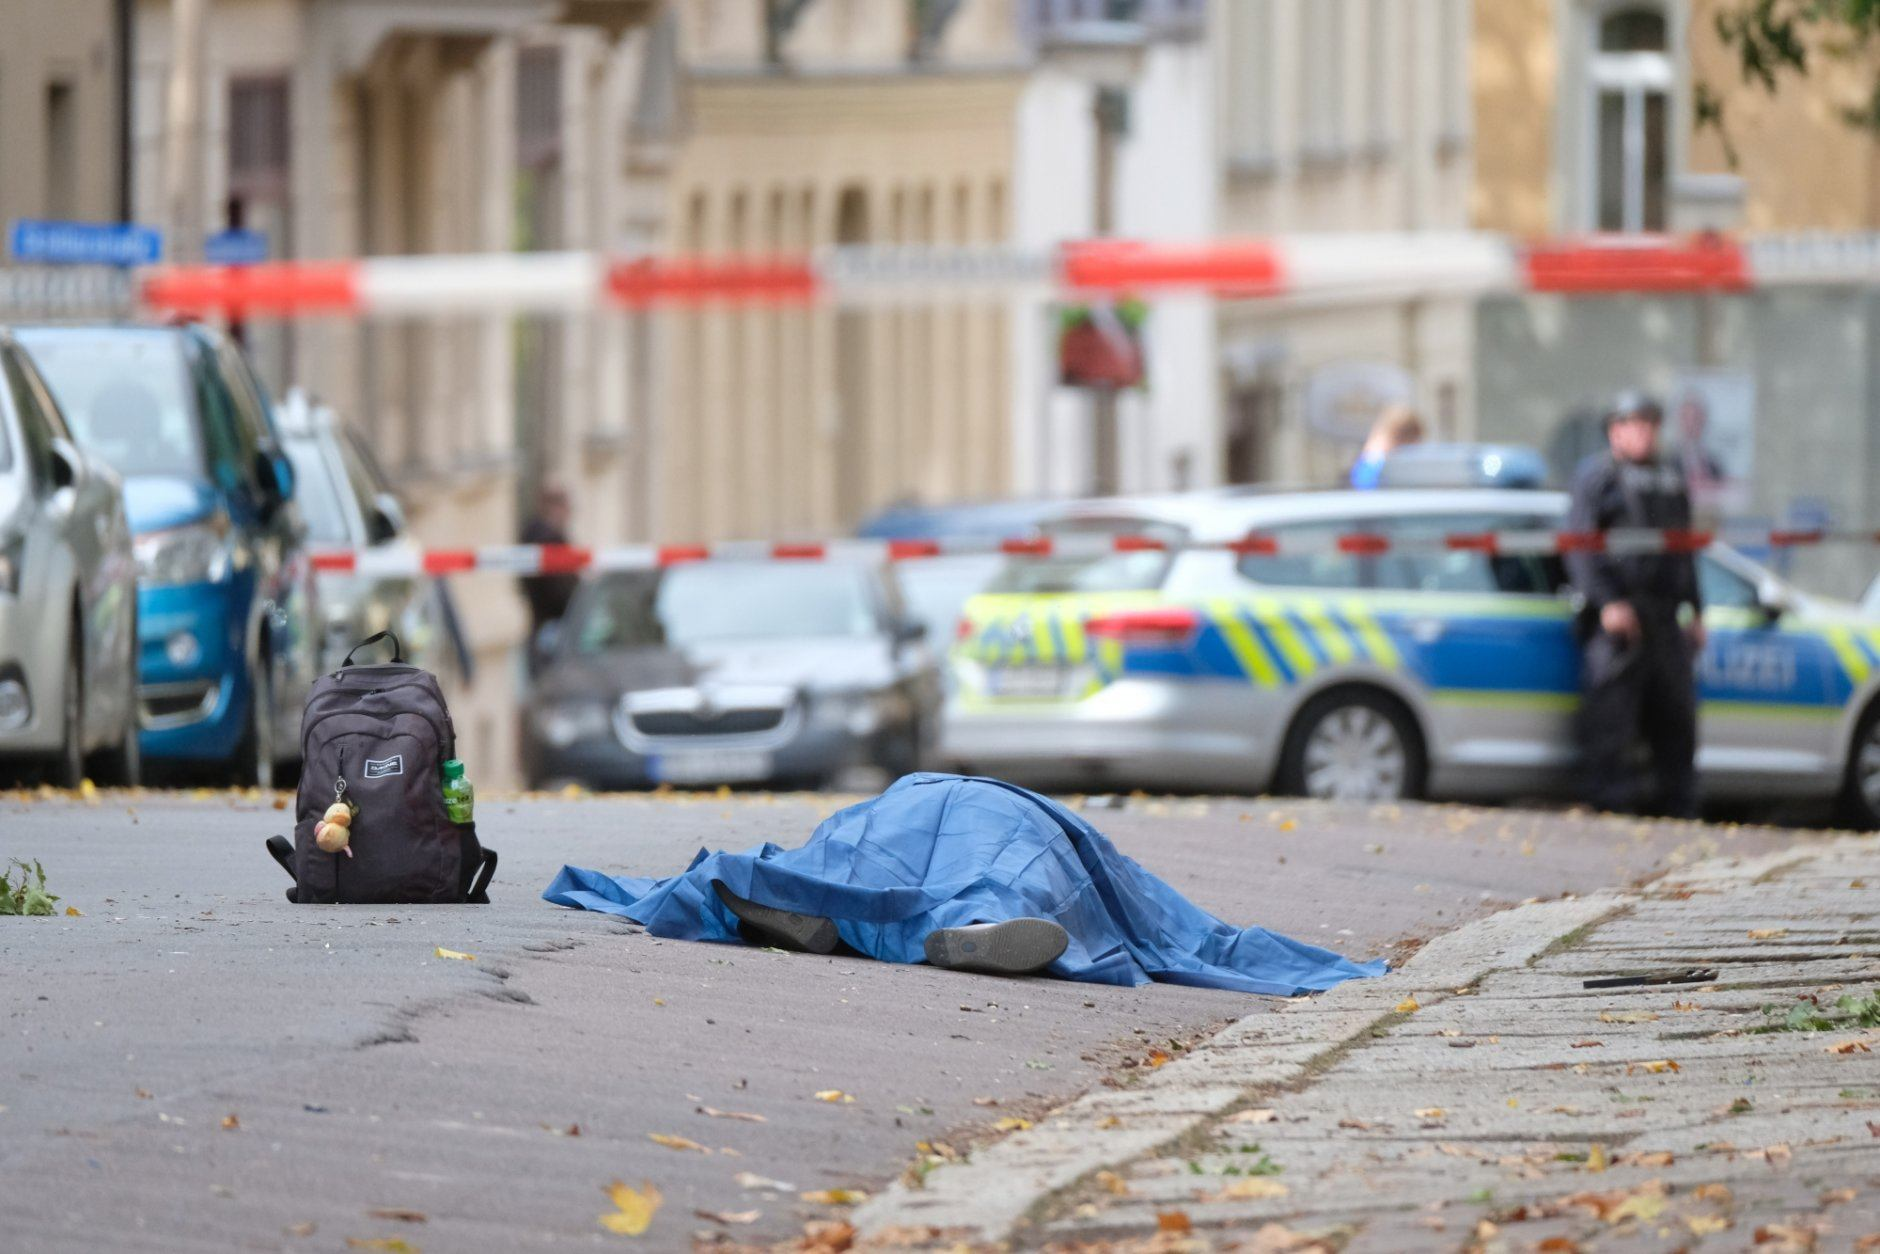 A person lies on a road in Halle, Germany, Wednesday, Oct. 9, 2019. A gunman fired several shots on Wednesday in German city of Halle and at least two got killed, according to local media FOCUS online. The gunman is on the run and police have sealed off the surrounding area. (Sebastian Willnow/dpa via AP)